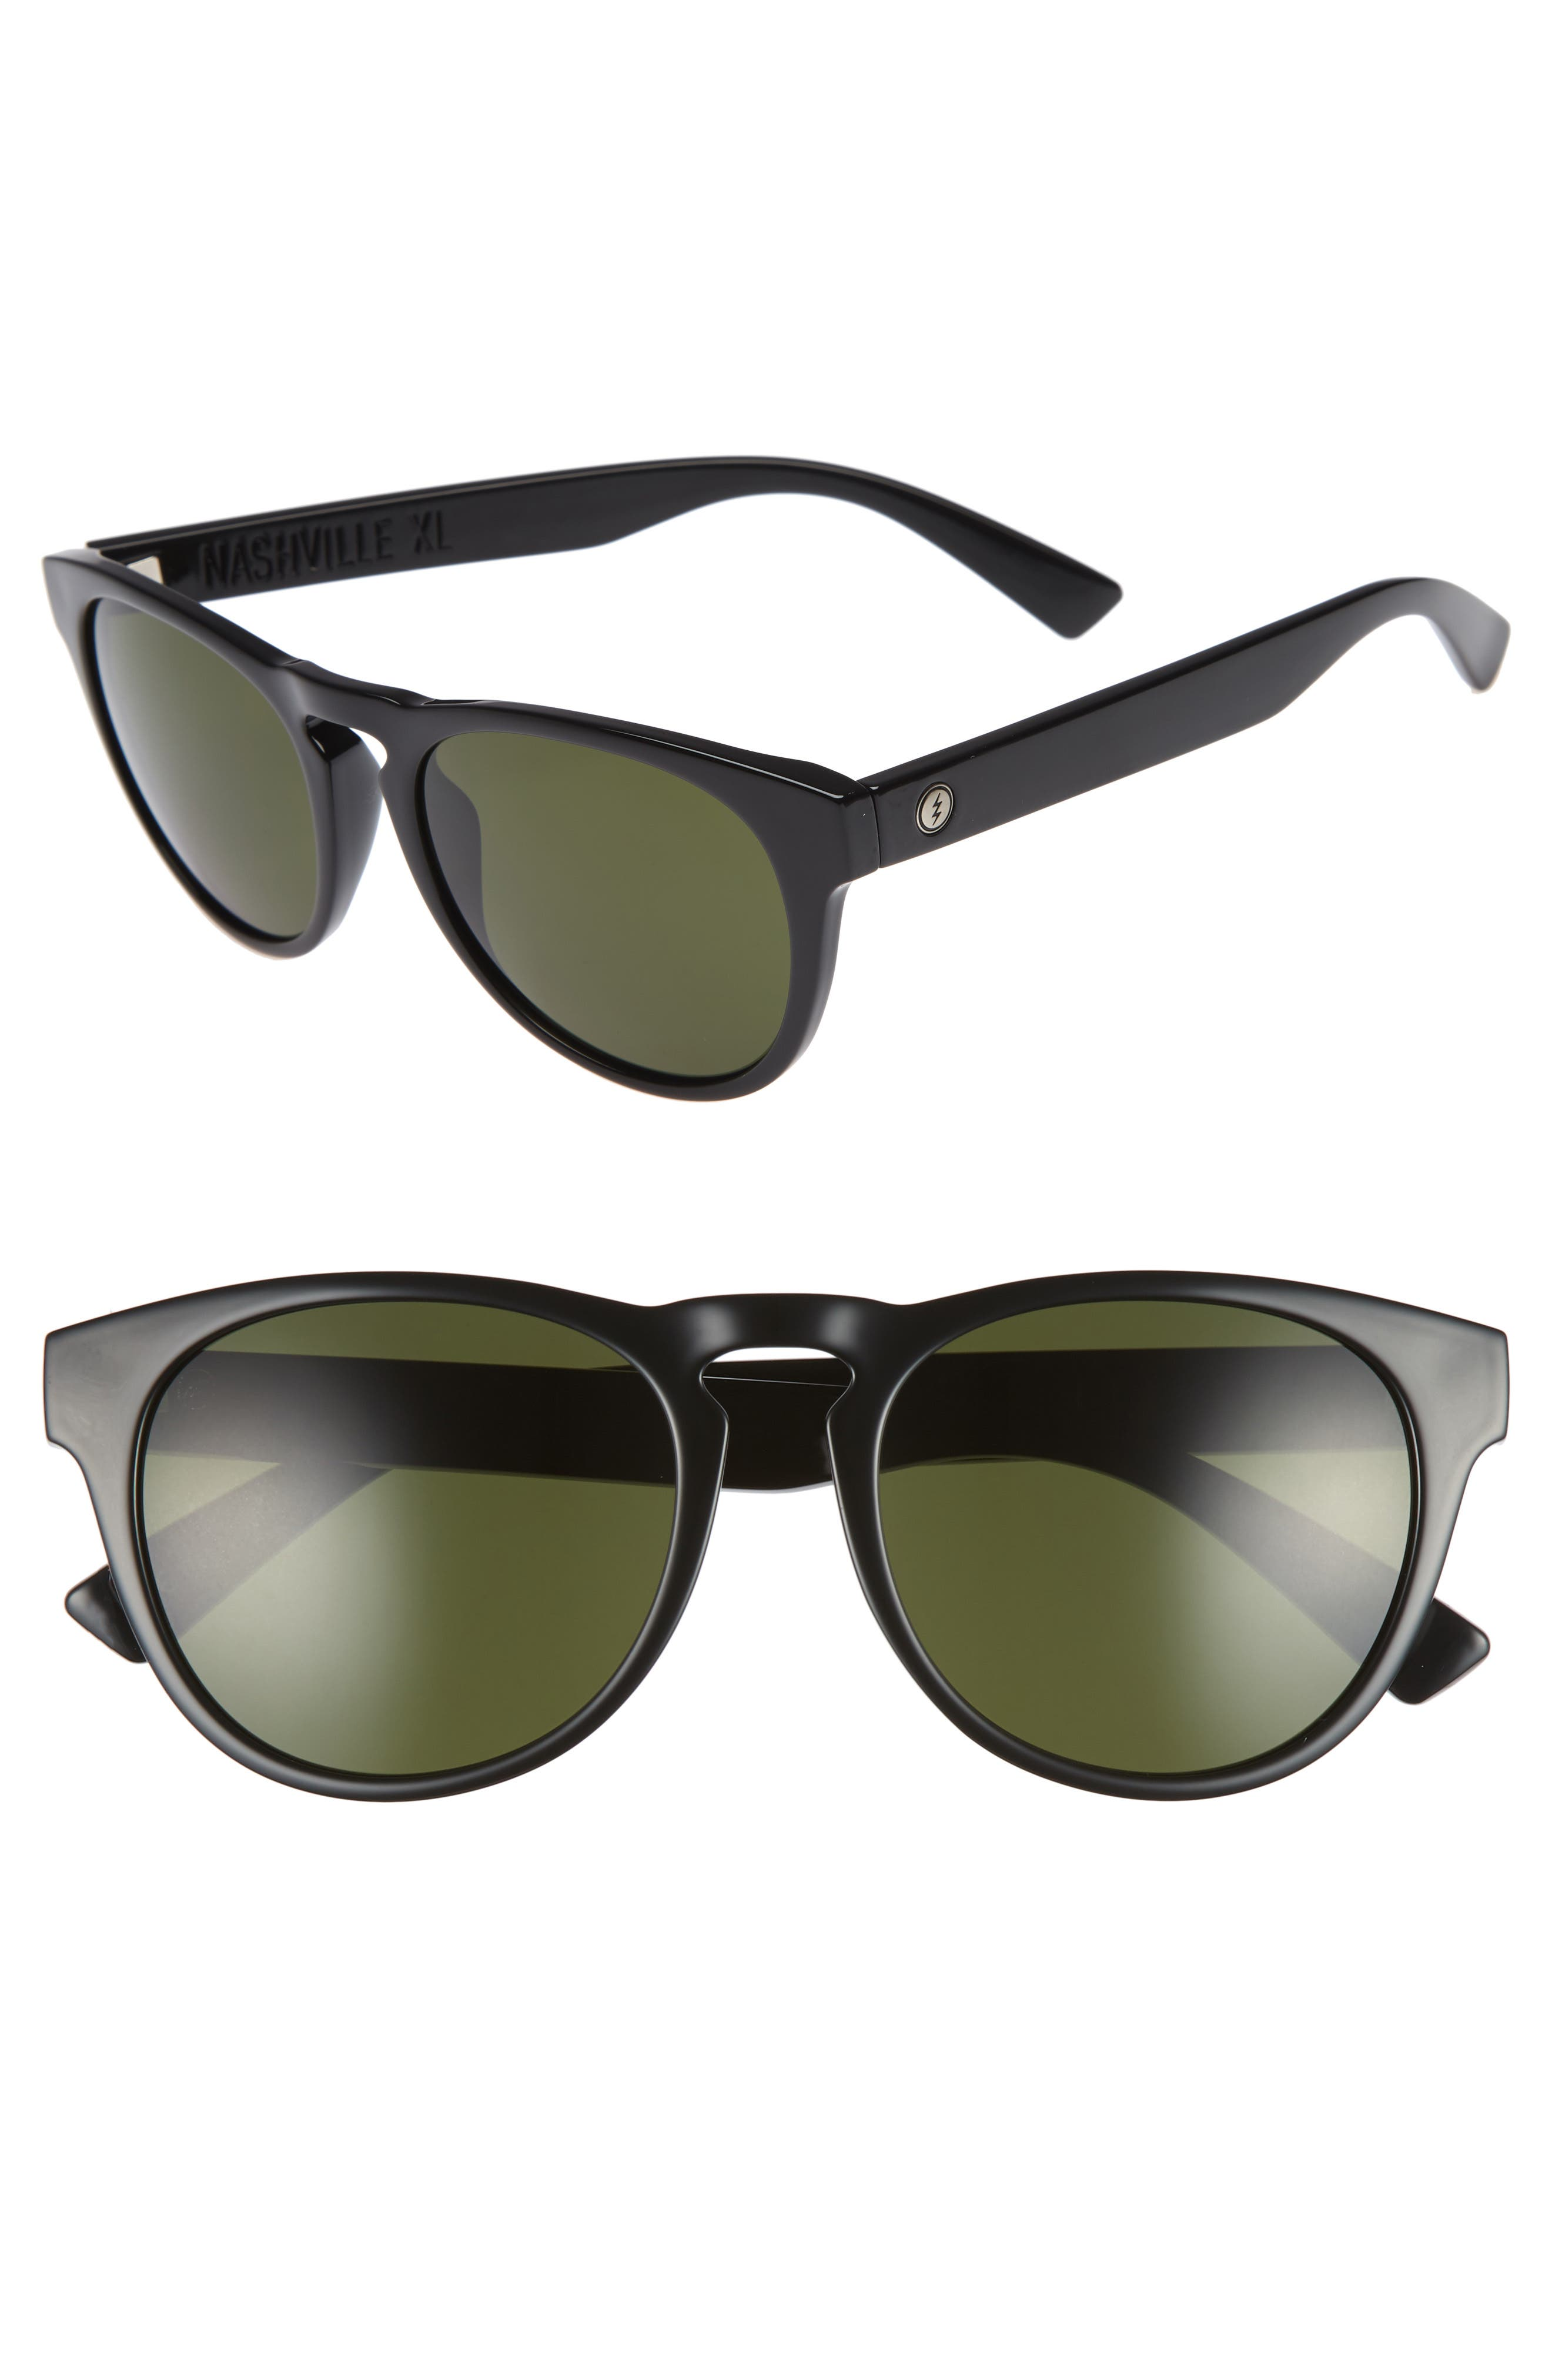 Nashville XL 52mm Melanin Infused Sunglasses,                         Main,                         color, GLOSS BLACK/ GREY